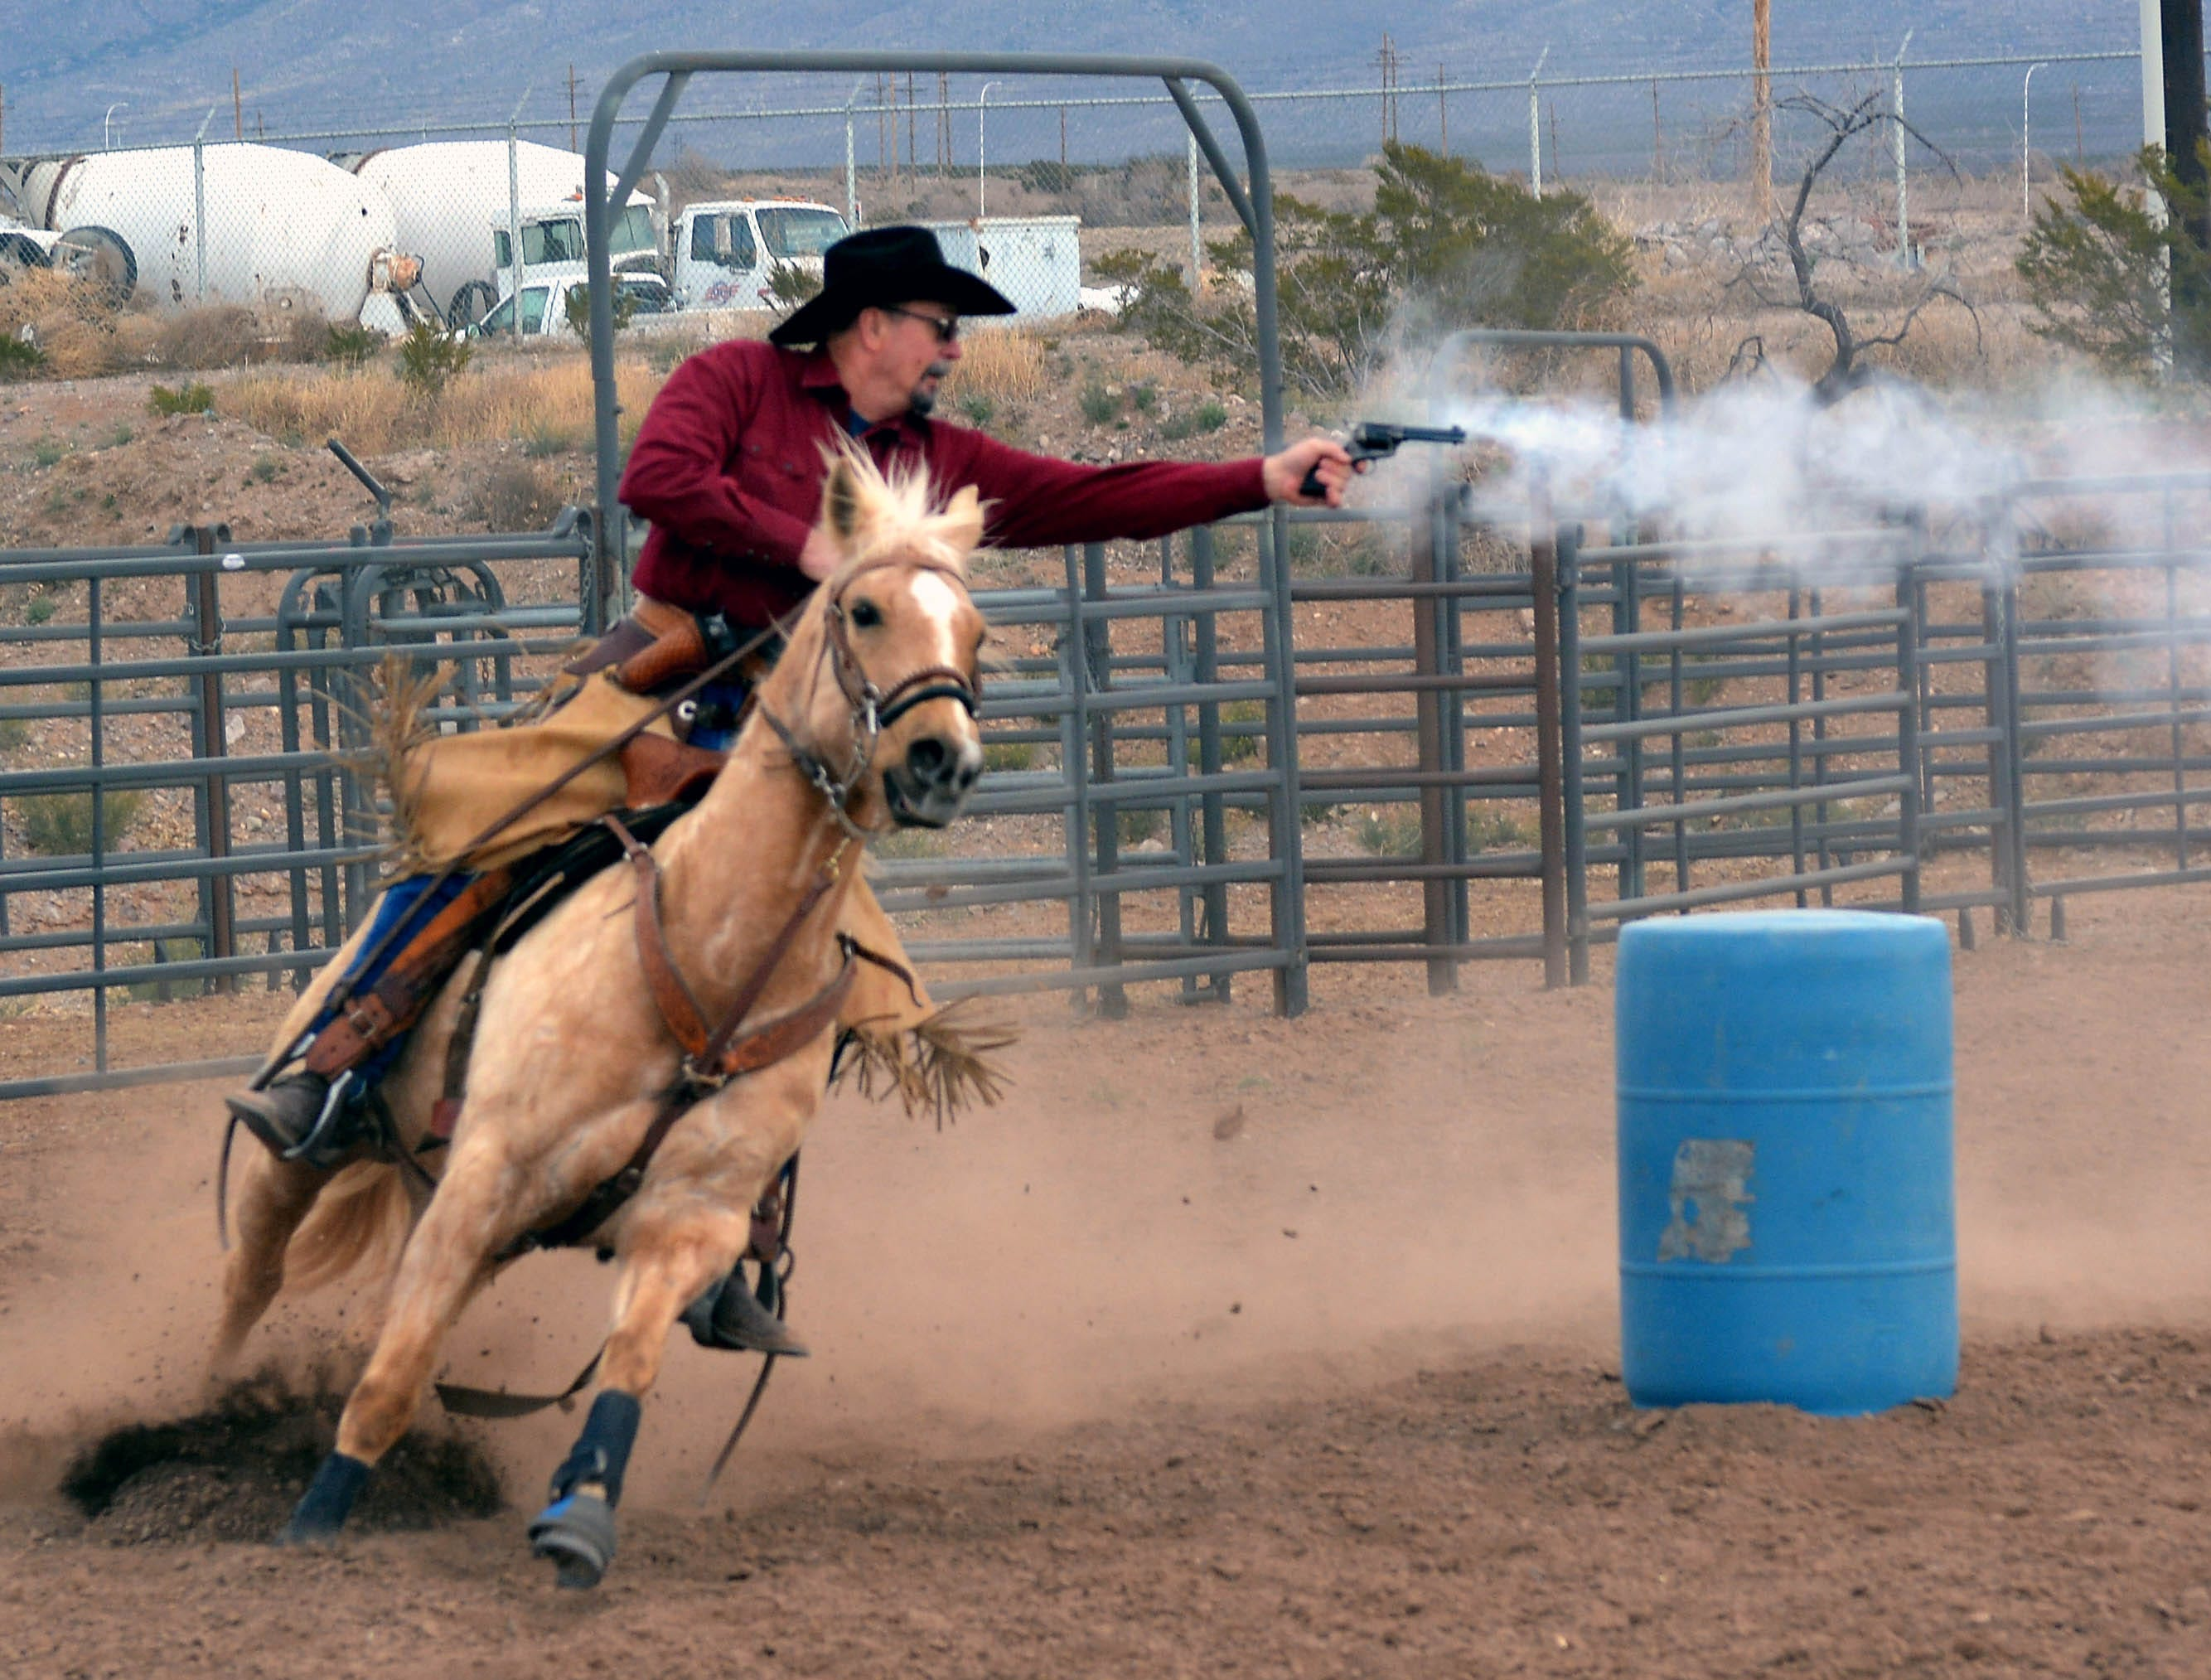 Billy Horner from Artesia does some trick shooting on his horse during the 20th annual Cowboy Days held Saturday, March 2, 2019, at the New Mexico Farm and Ranch Heritage Museum.